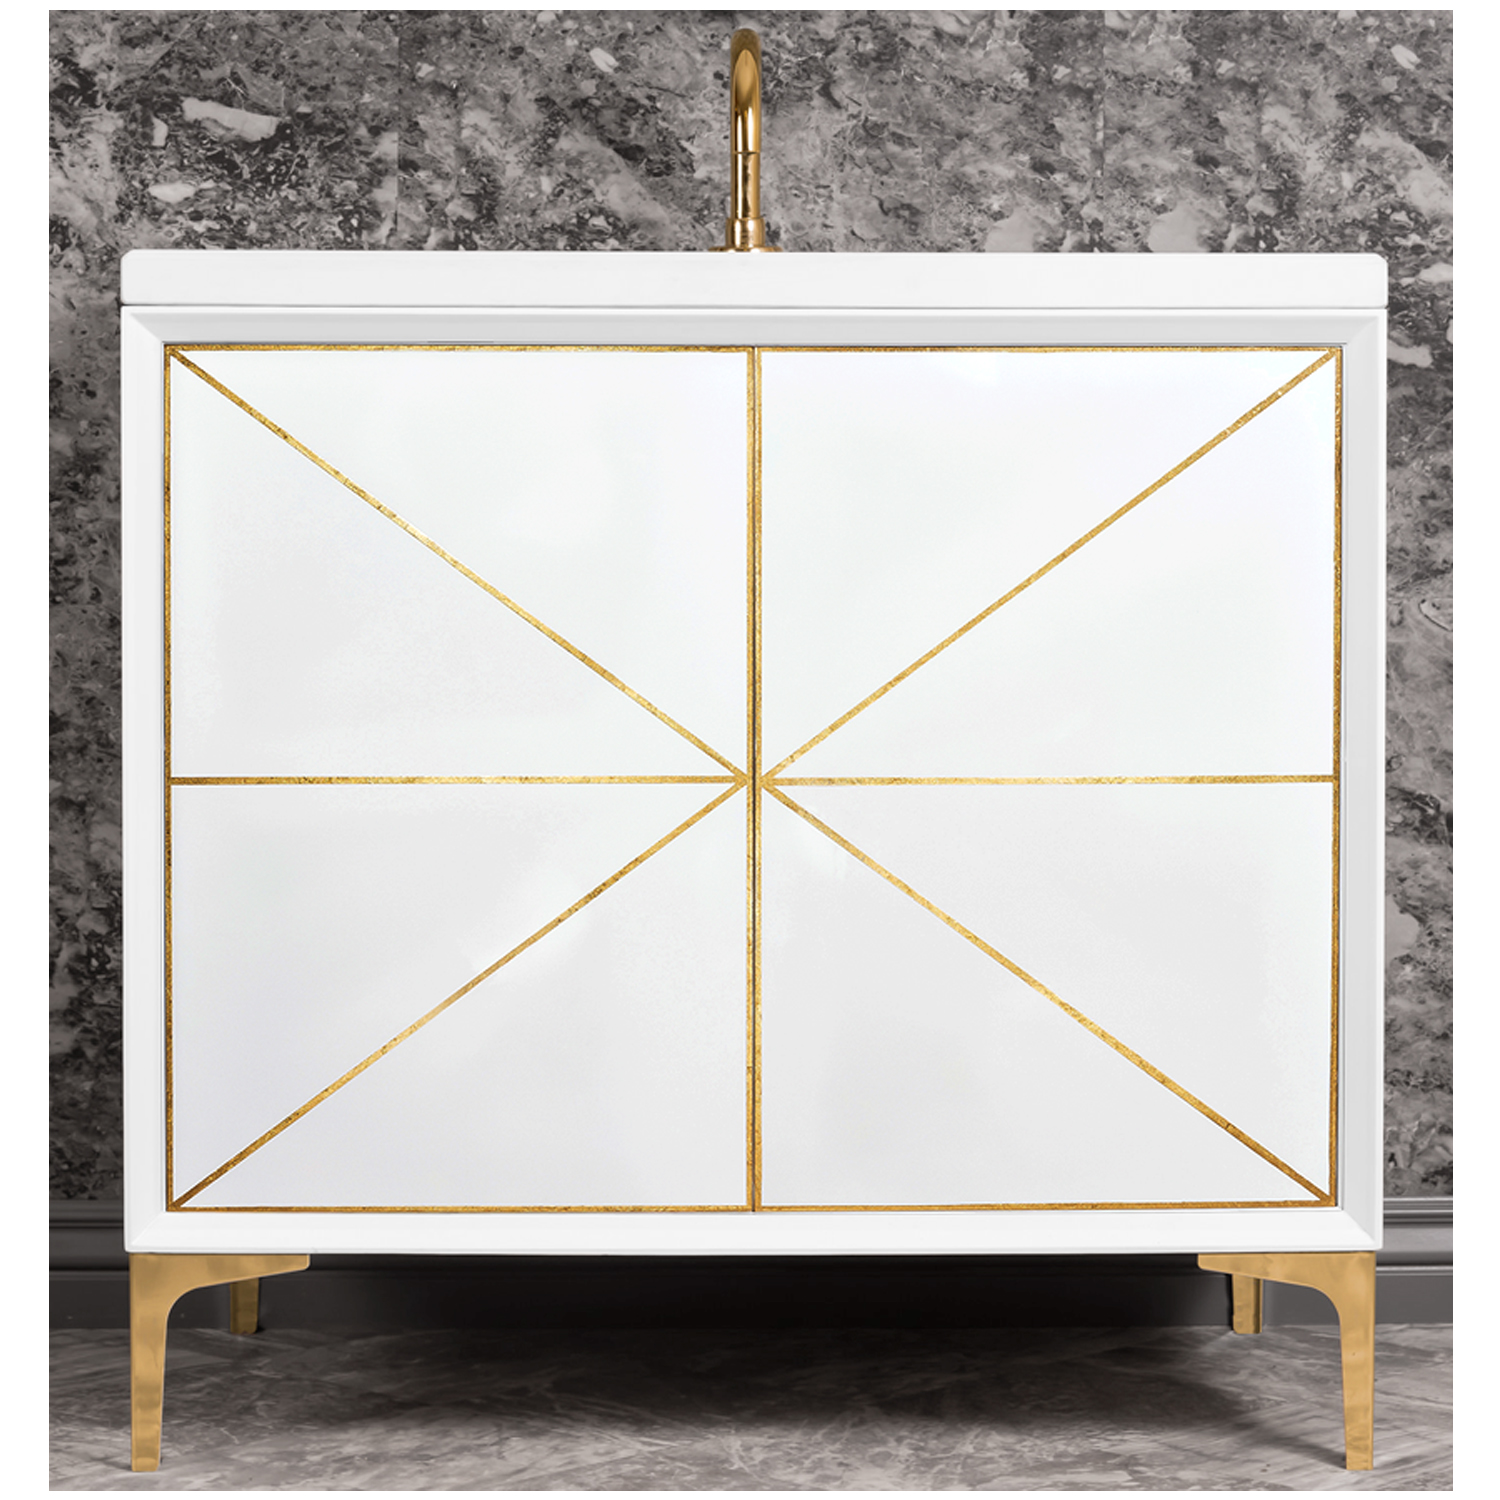 "VAN36W-002   36"" White Divergence - Shown with PB (Polished Brass Finish)"